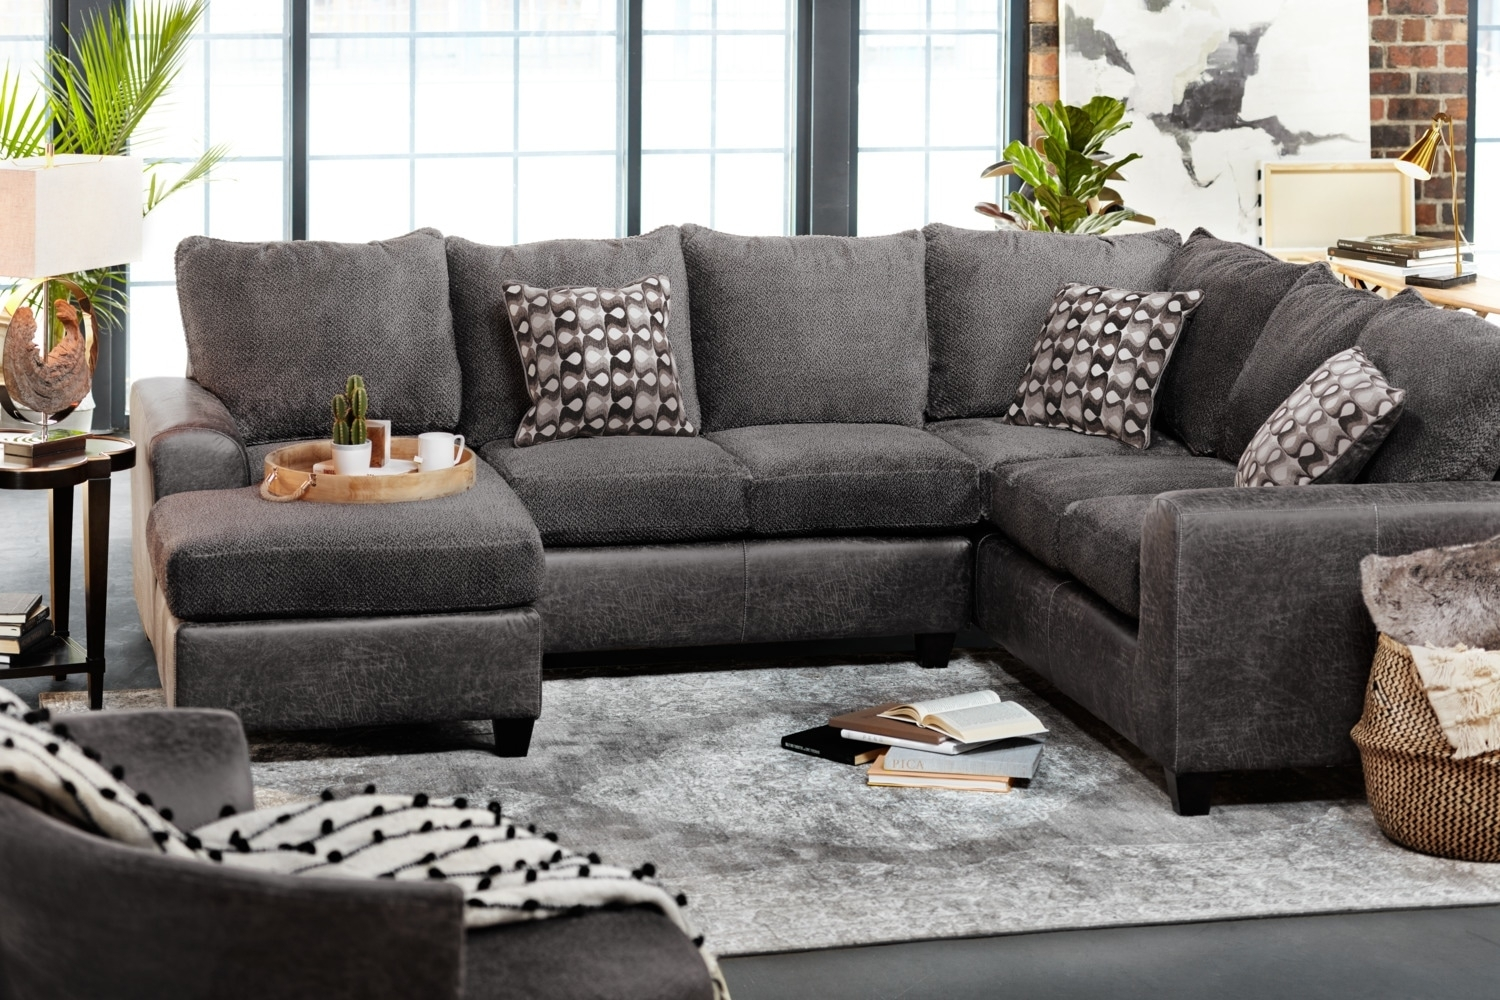 3 Piece Sectional   Locsbyhelenelorasa Pertaining To Harper Foam 3 Piece Sectionals With Raf Chaise (Photo 12 of 30)